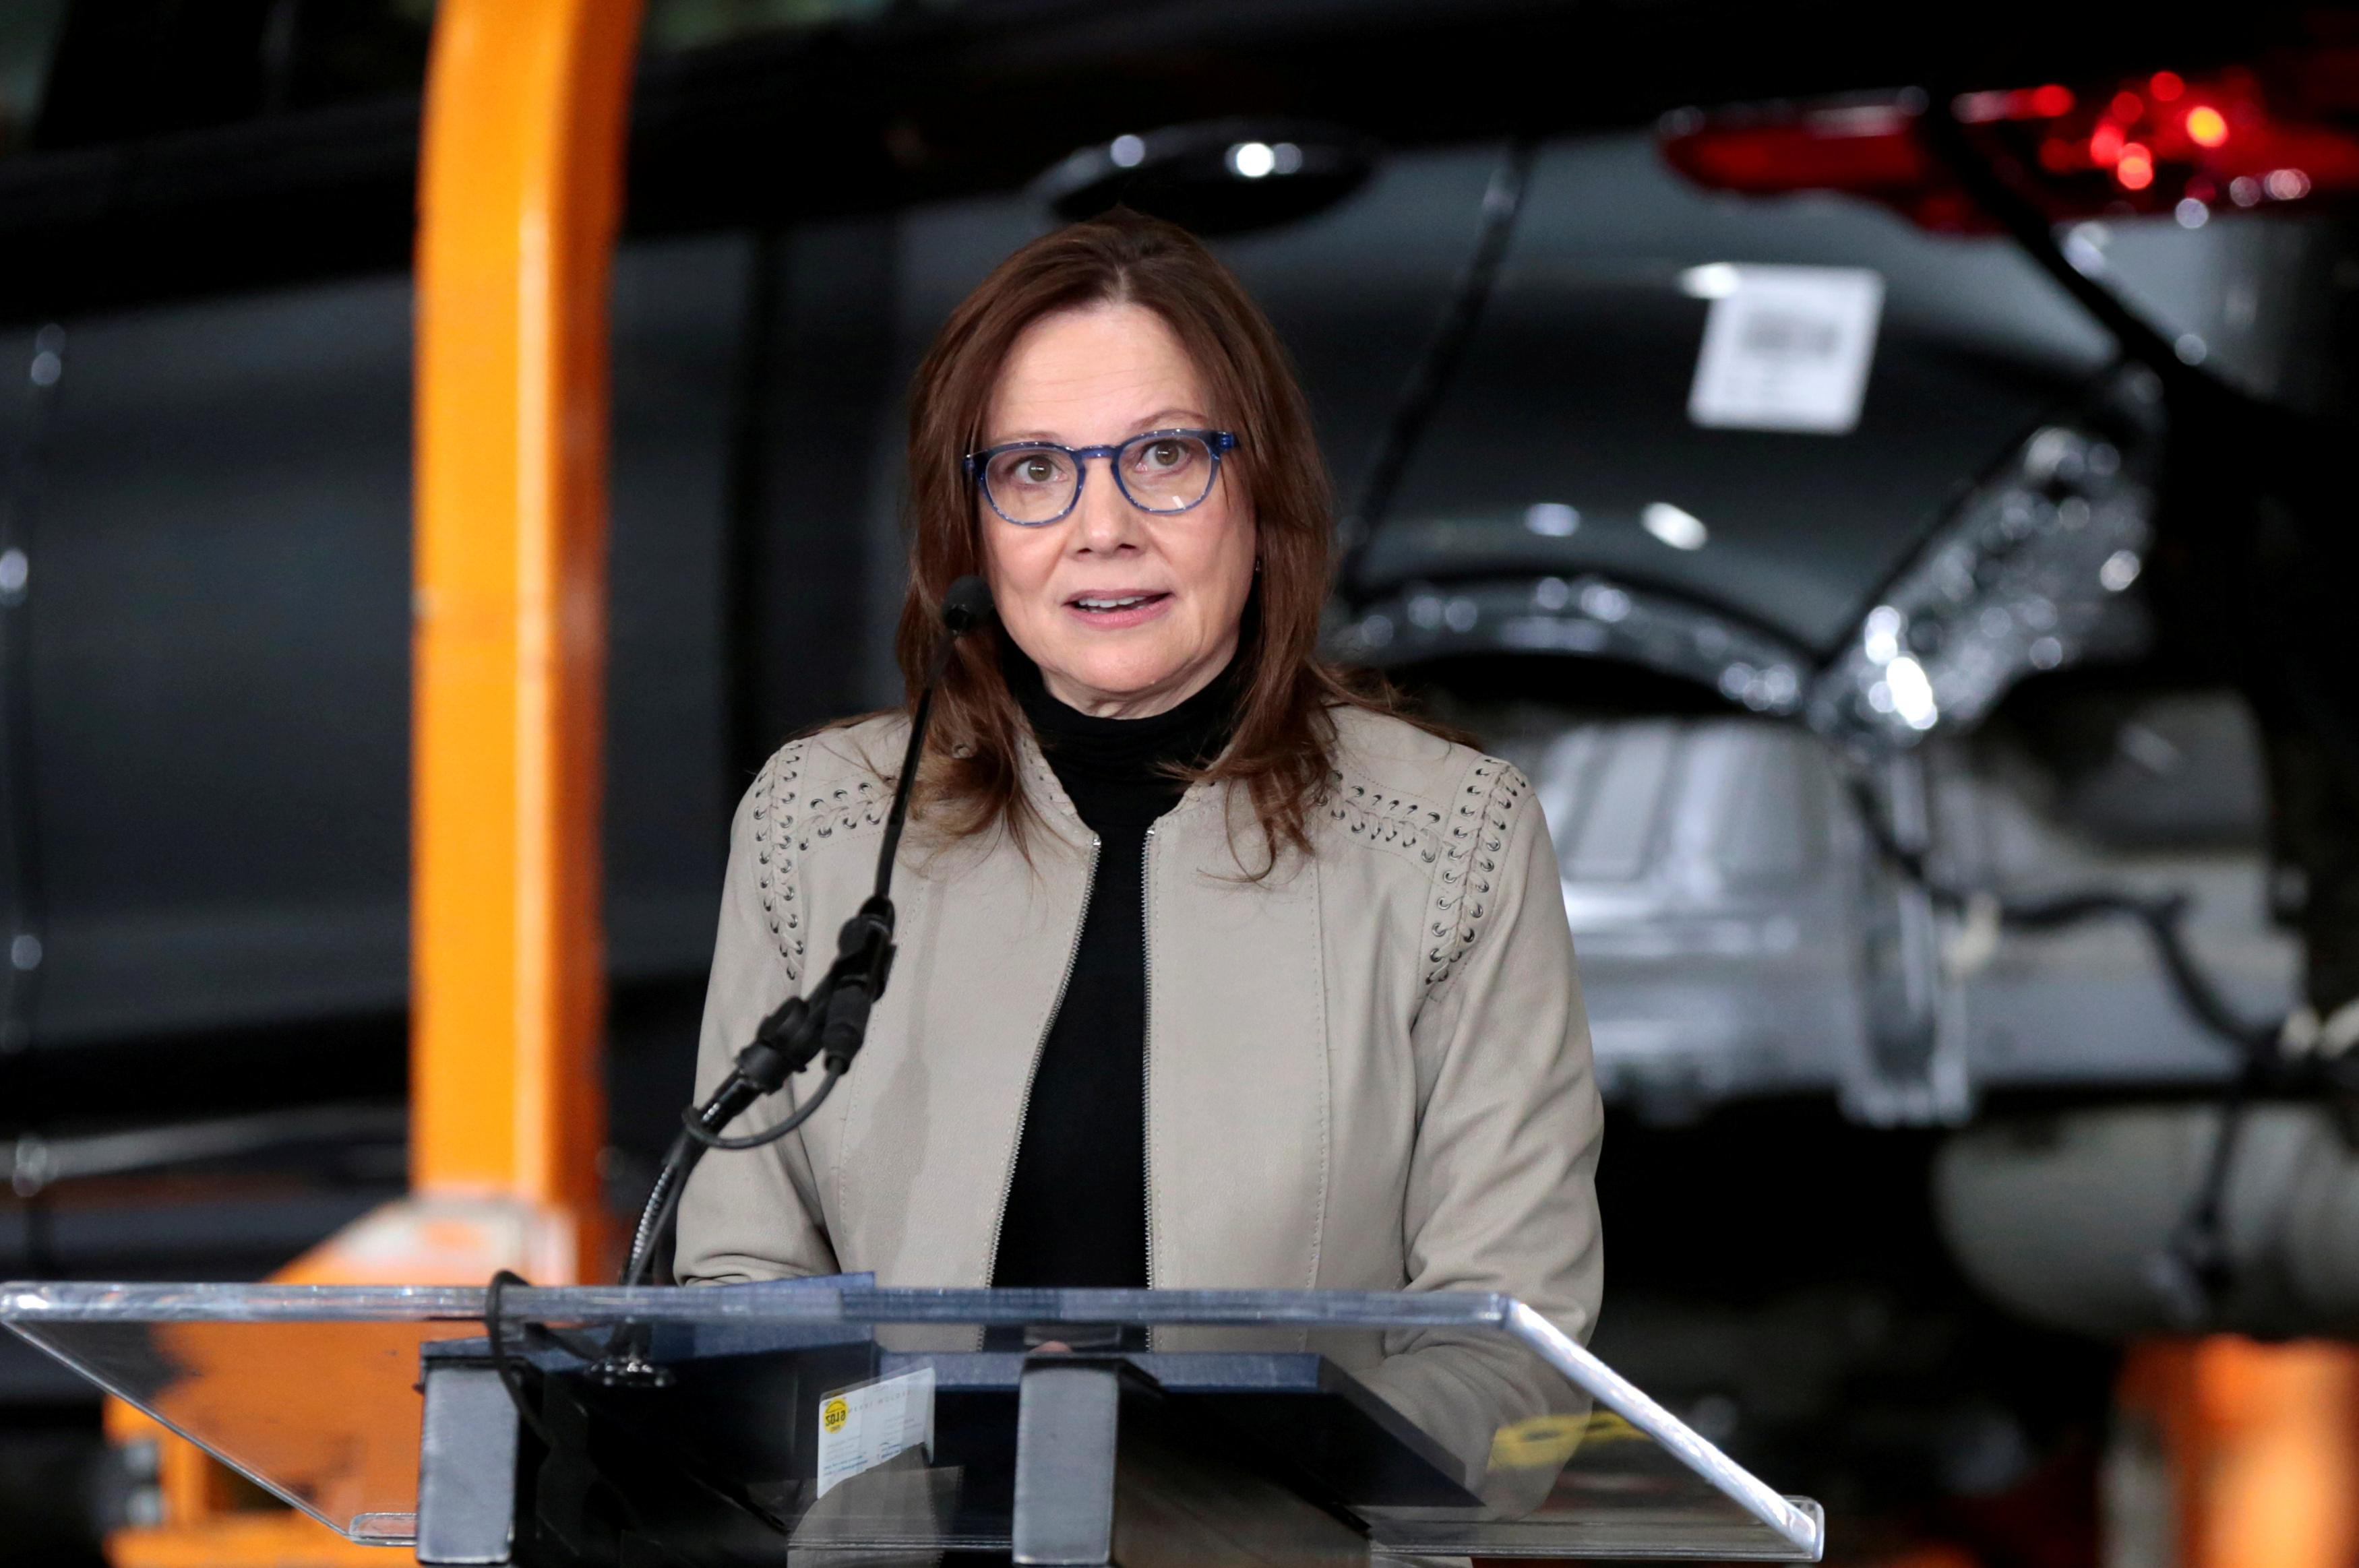 GM's electric pickup to hit dealer showrooms in fall 2021: CEO